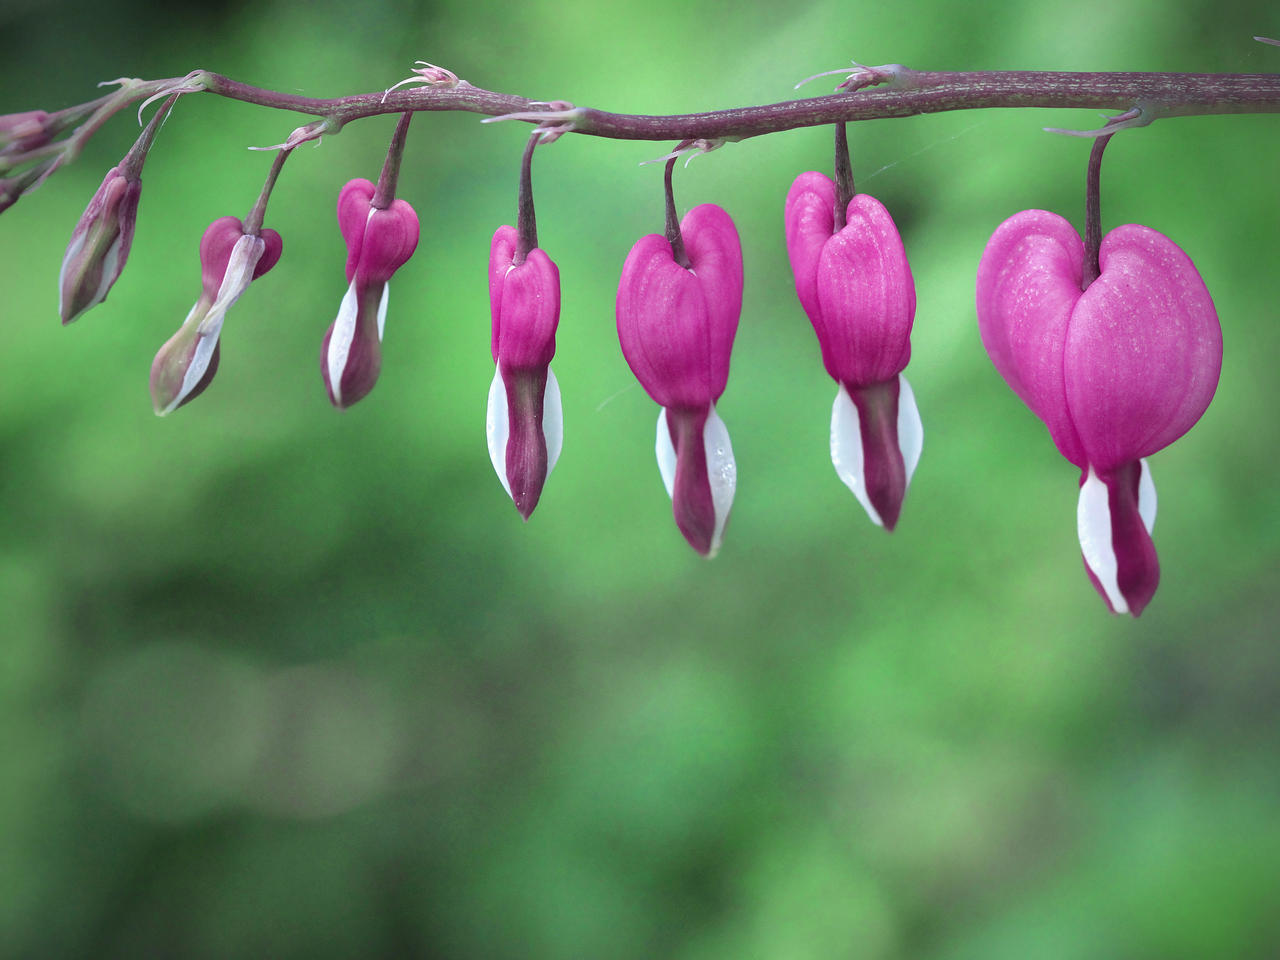 Hearts Hung on a String by KMourzenko